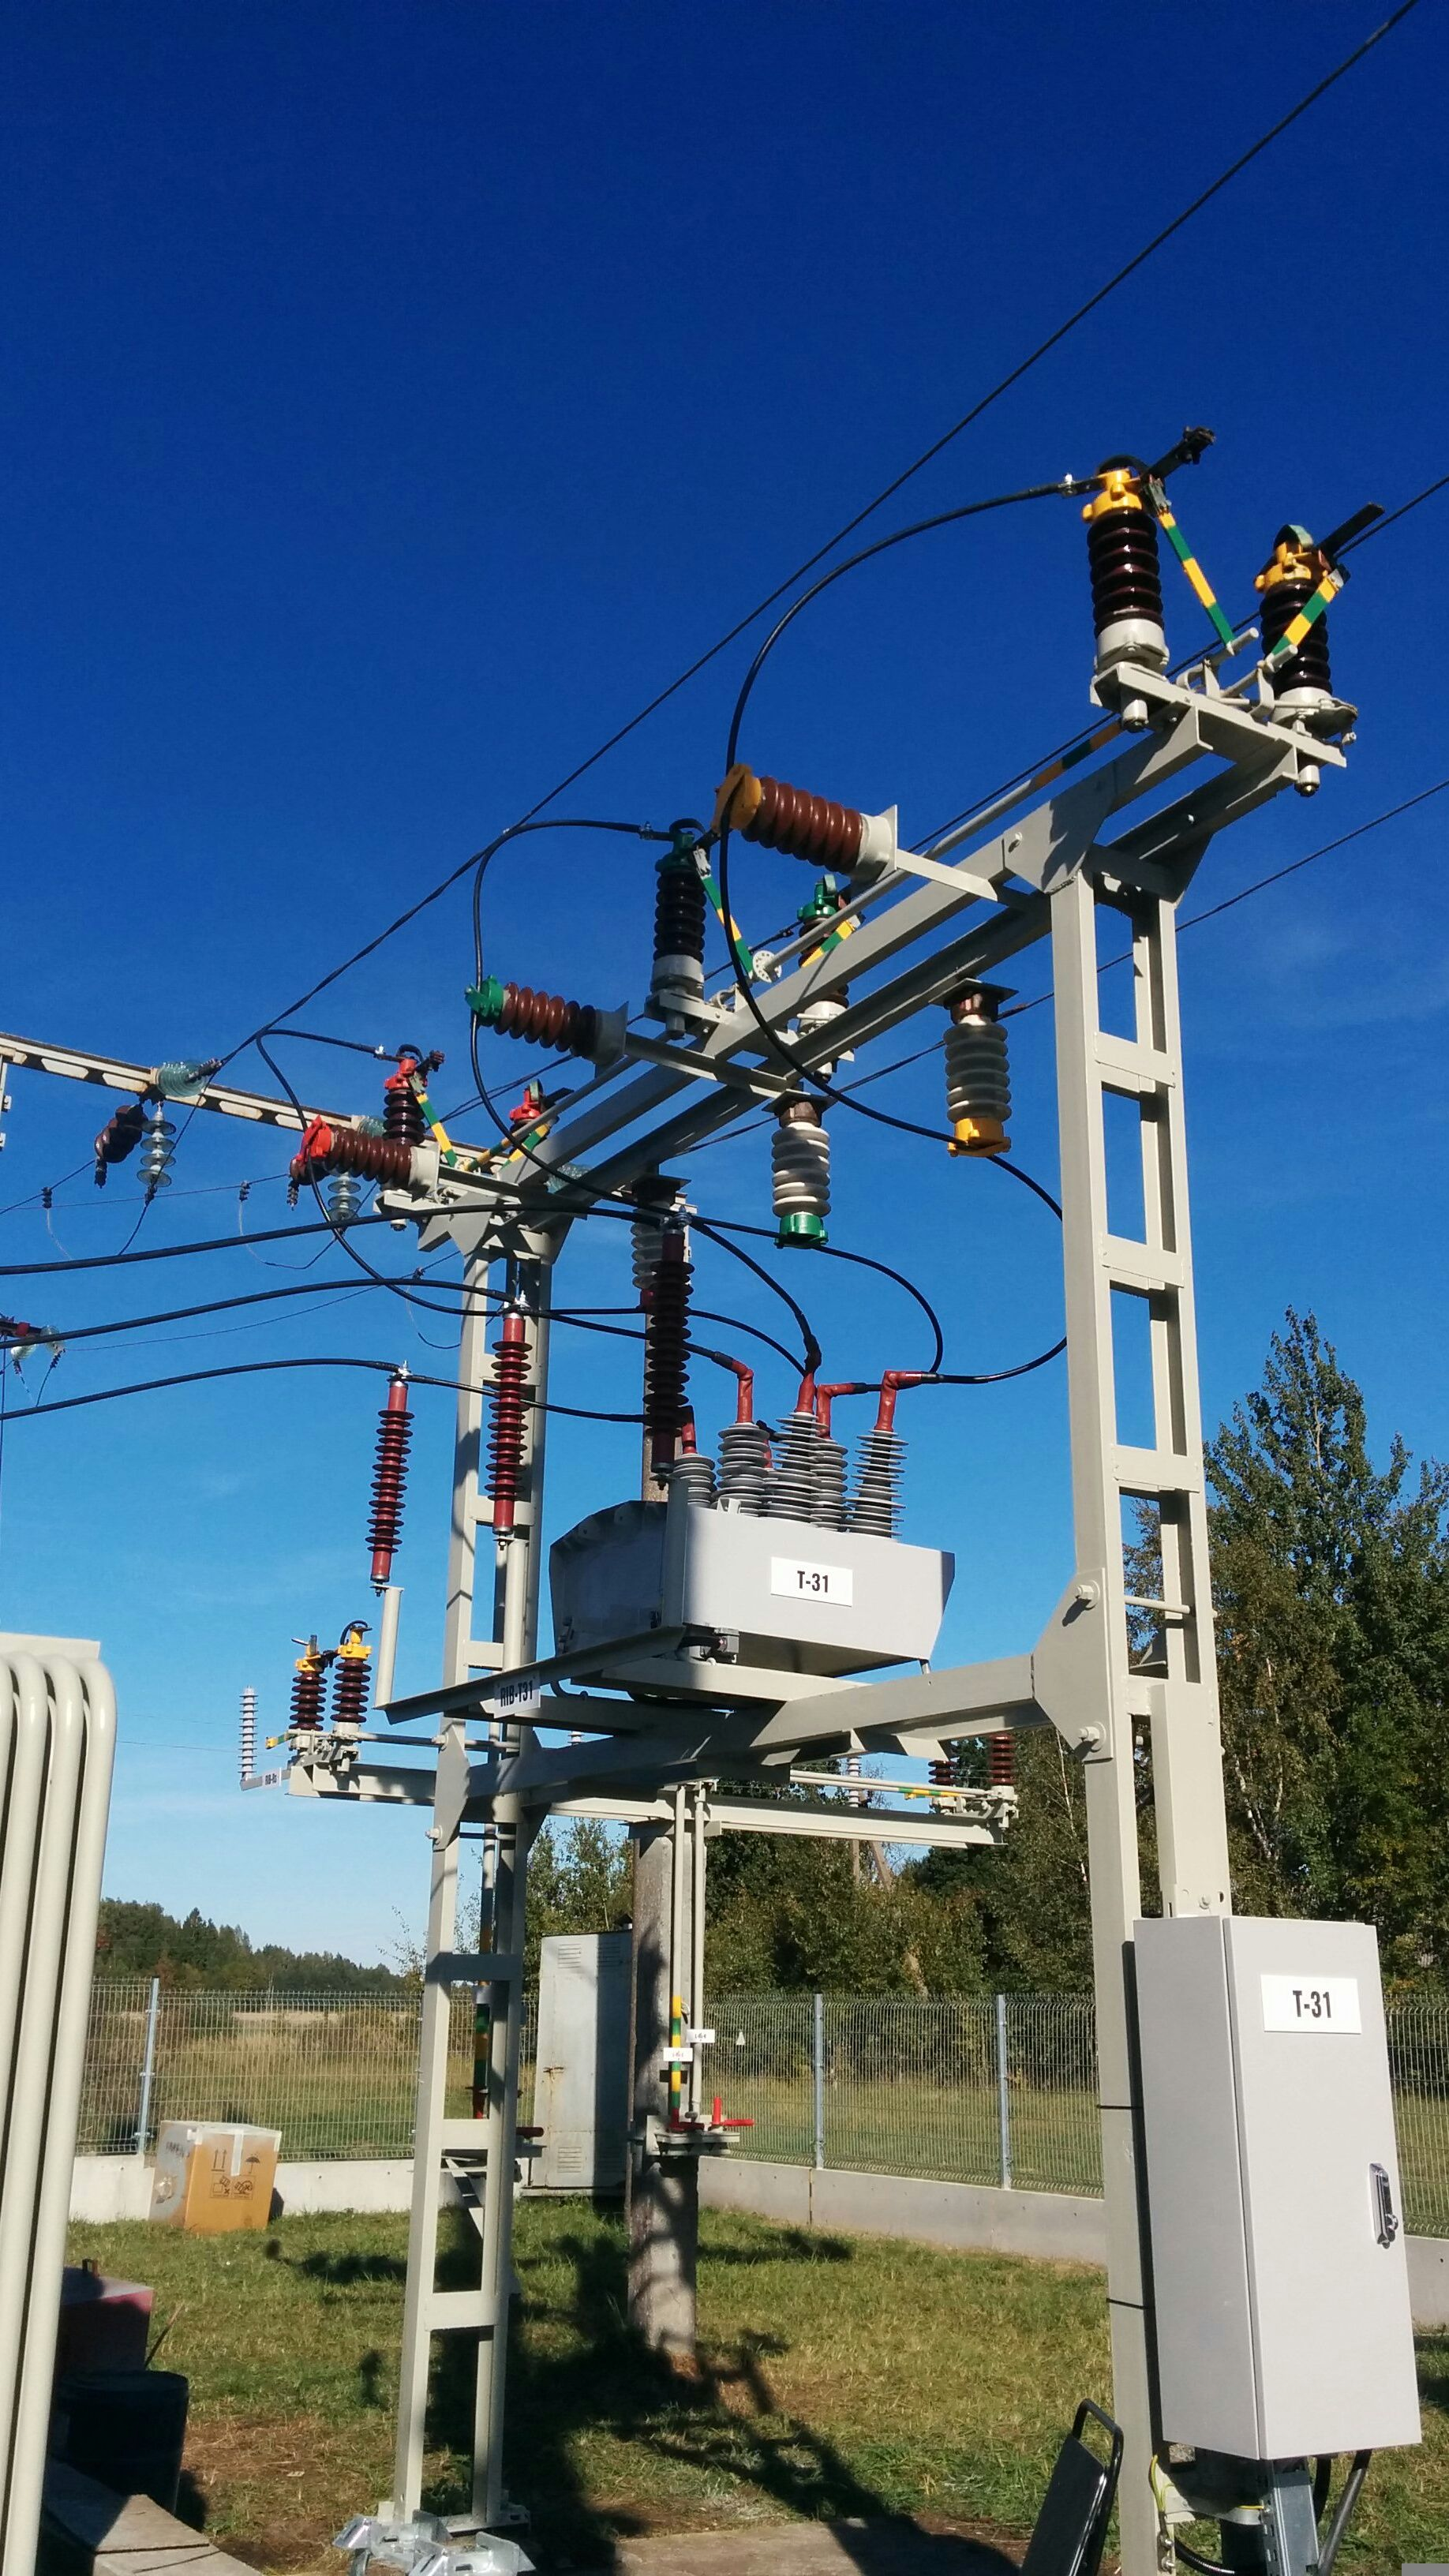 Osm38 In Substation Lithuania Transmission Tower Electronic Engineering Power Plant